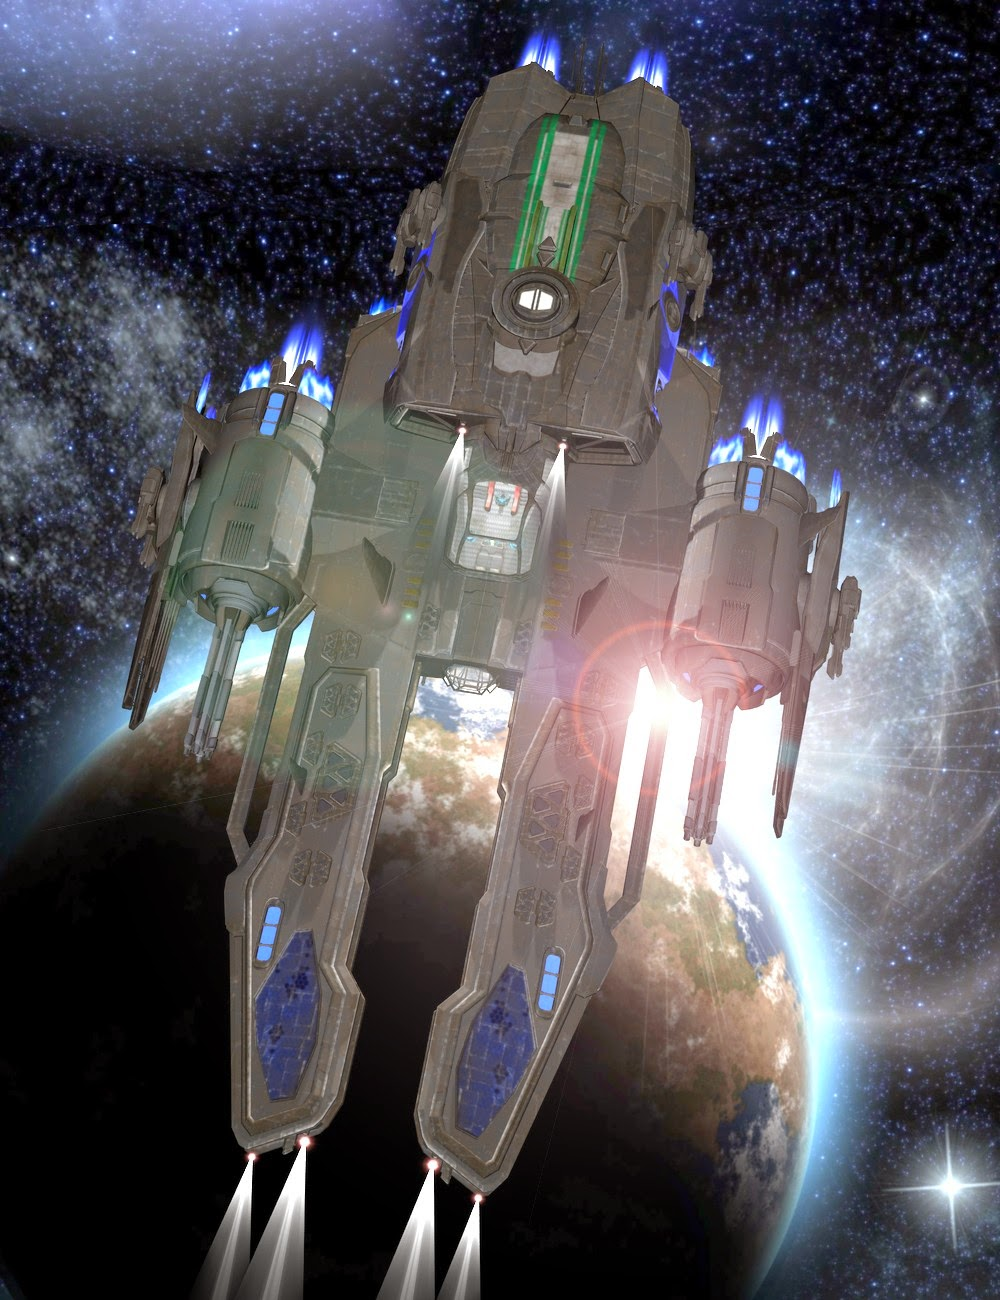 UEF Arachnid Class Escort Destroyer